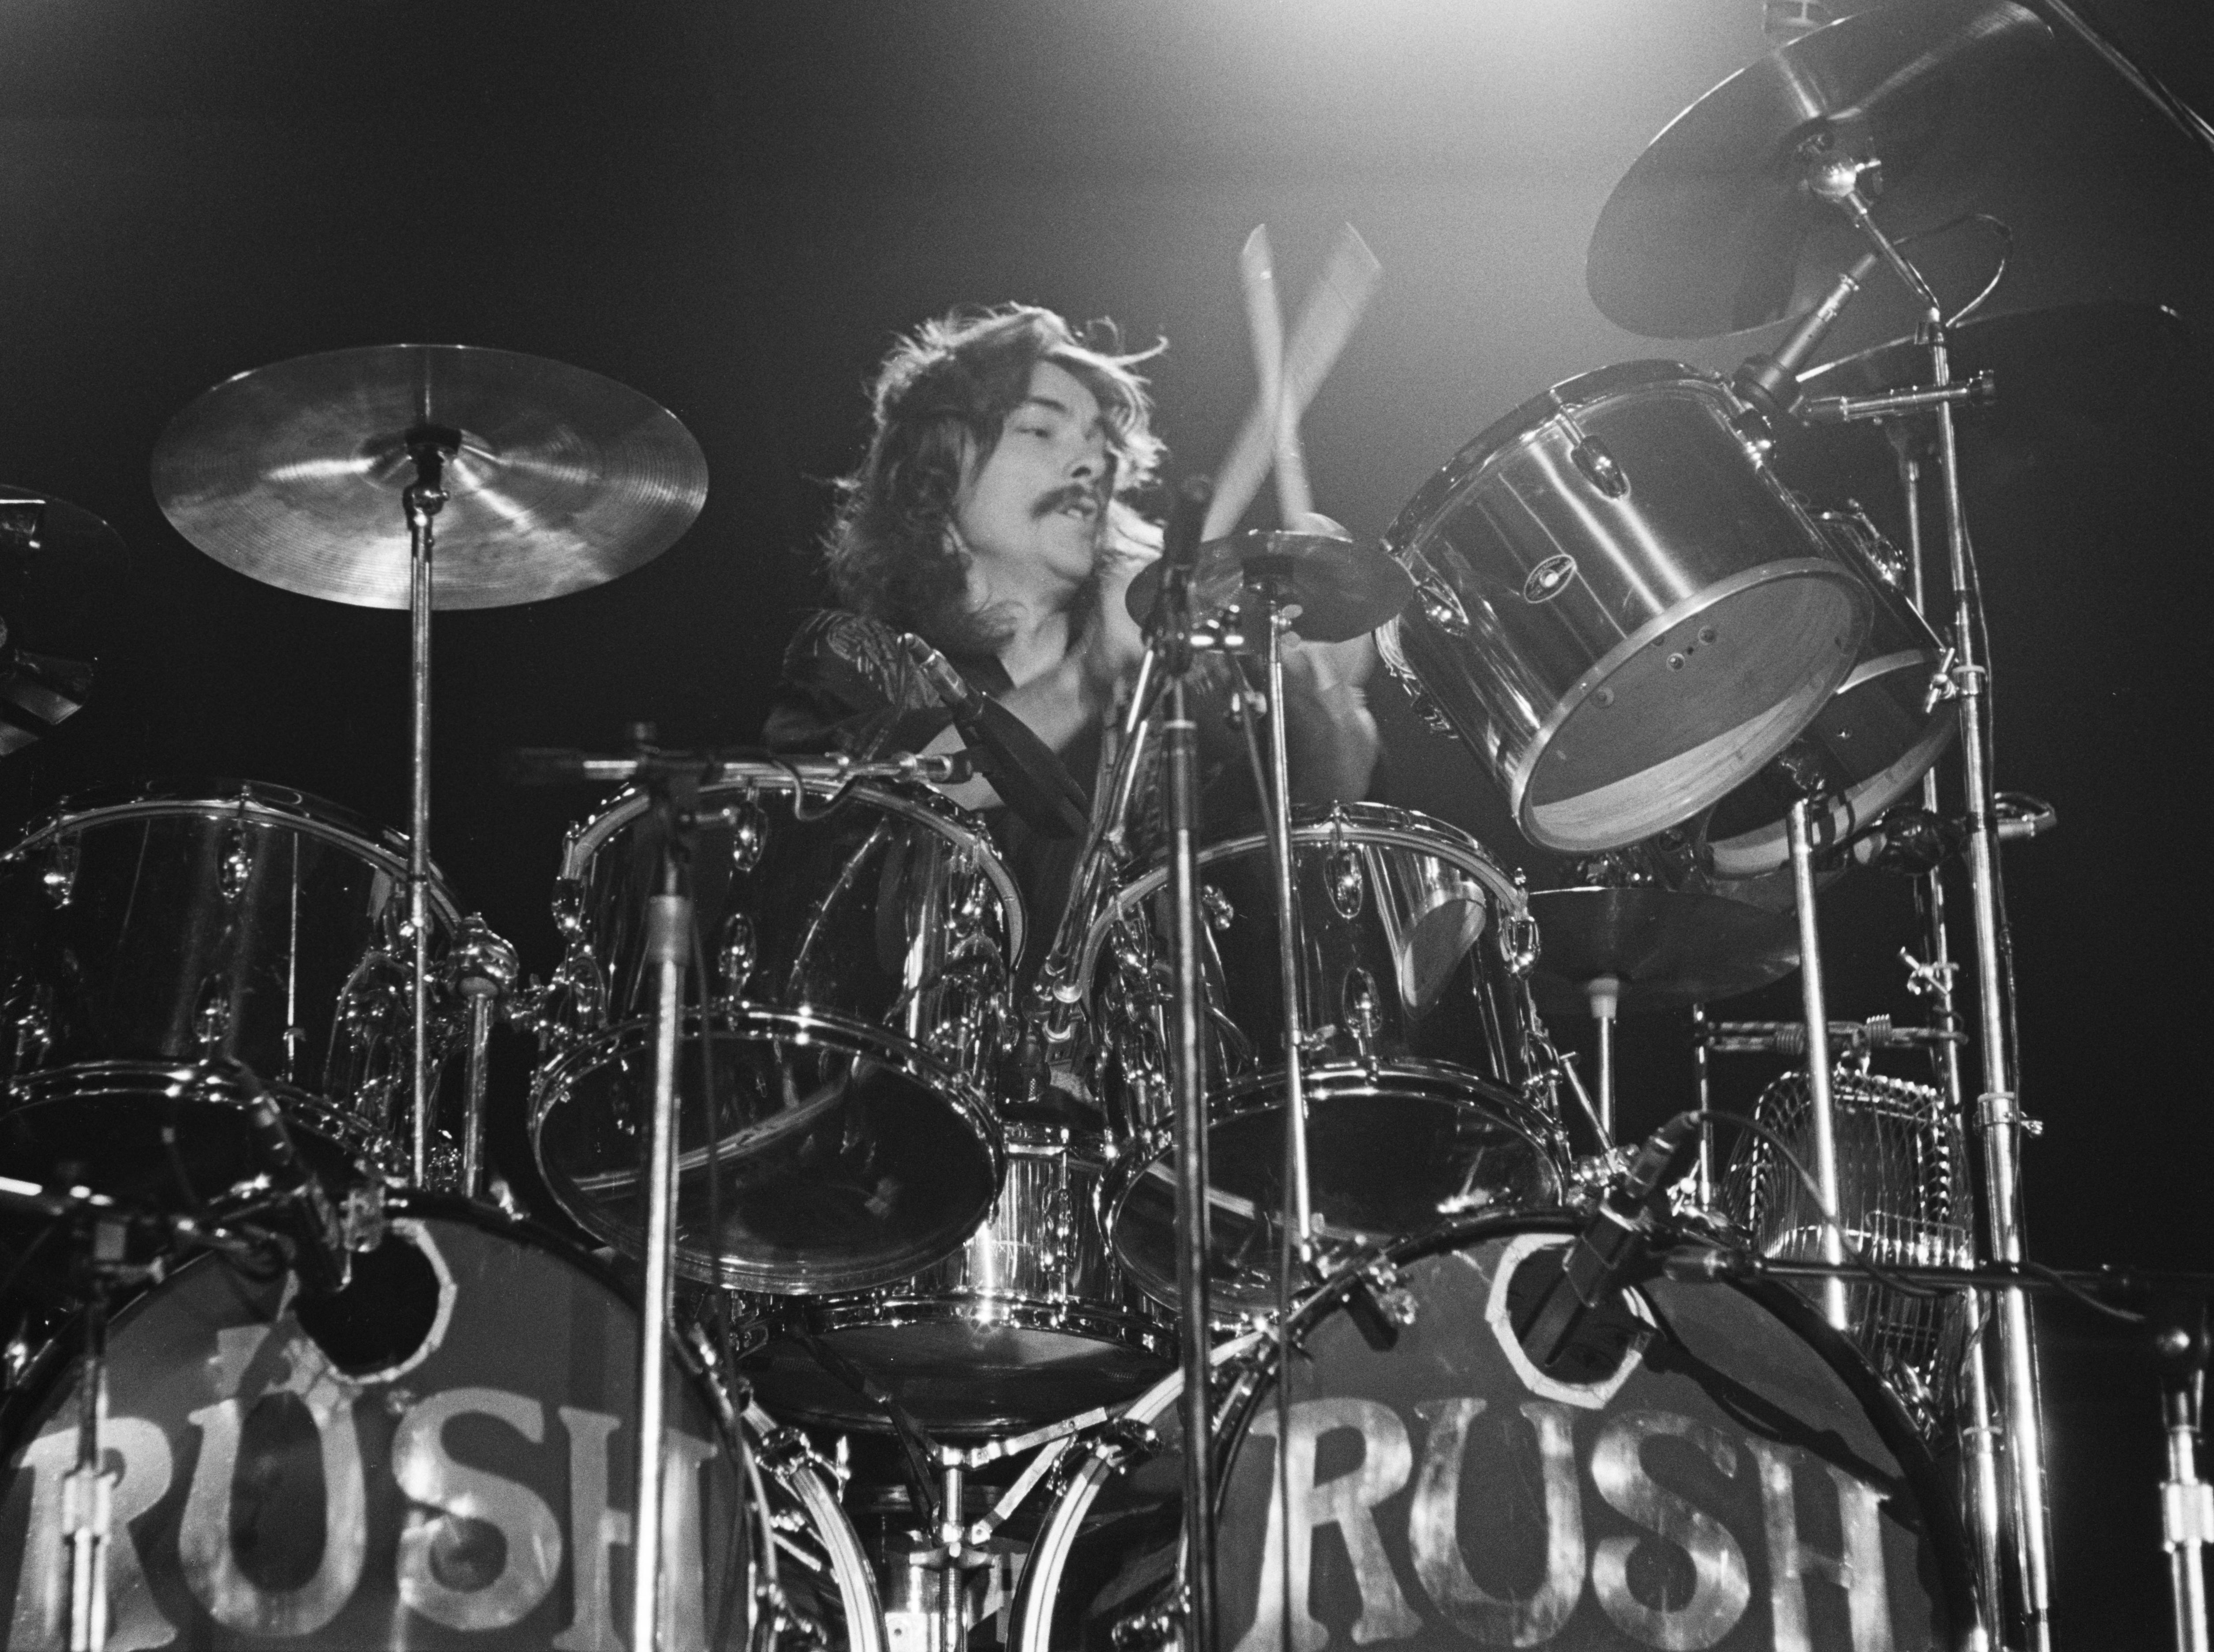 Legendary drummer Neil Peart of the band Rush died at age 67 on Jan. 7, 2020 in Santa Monica, California.